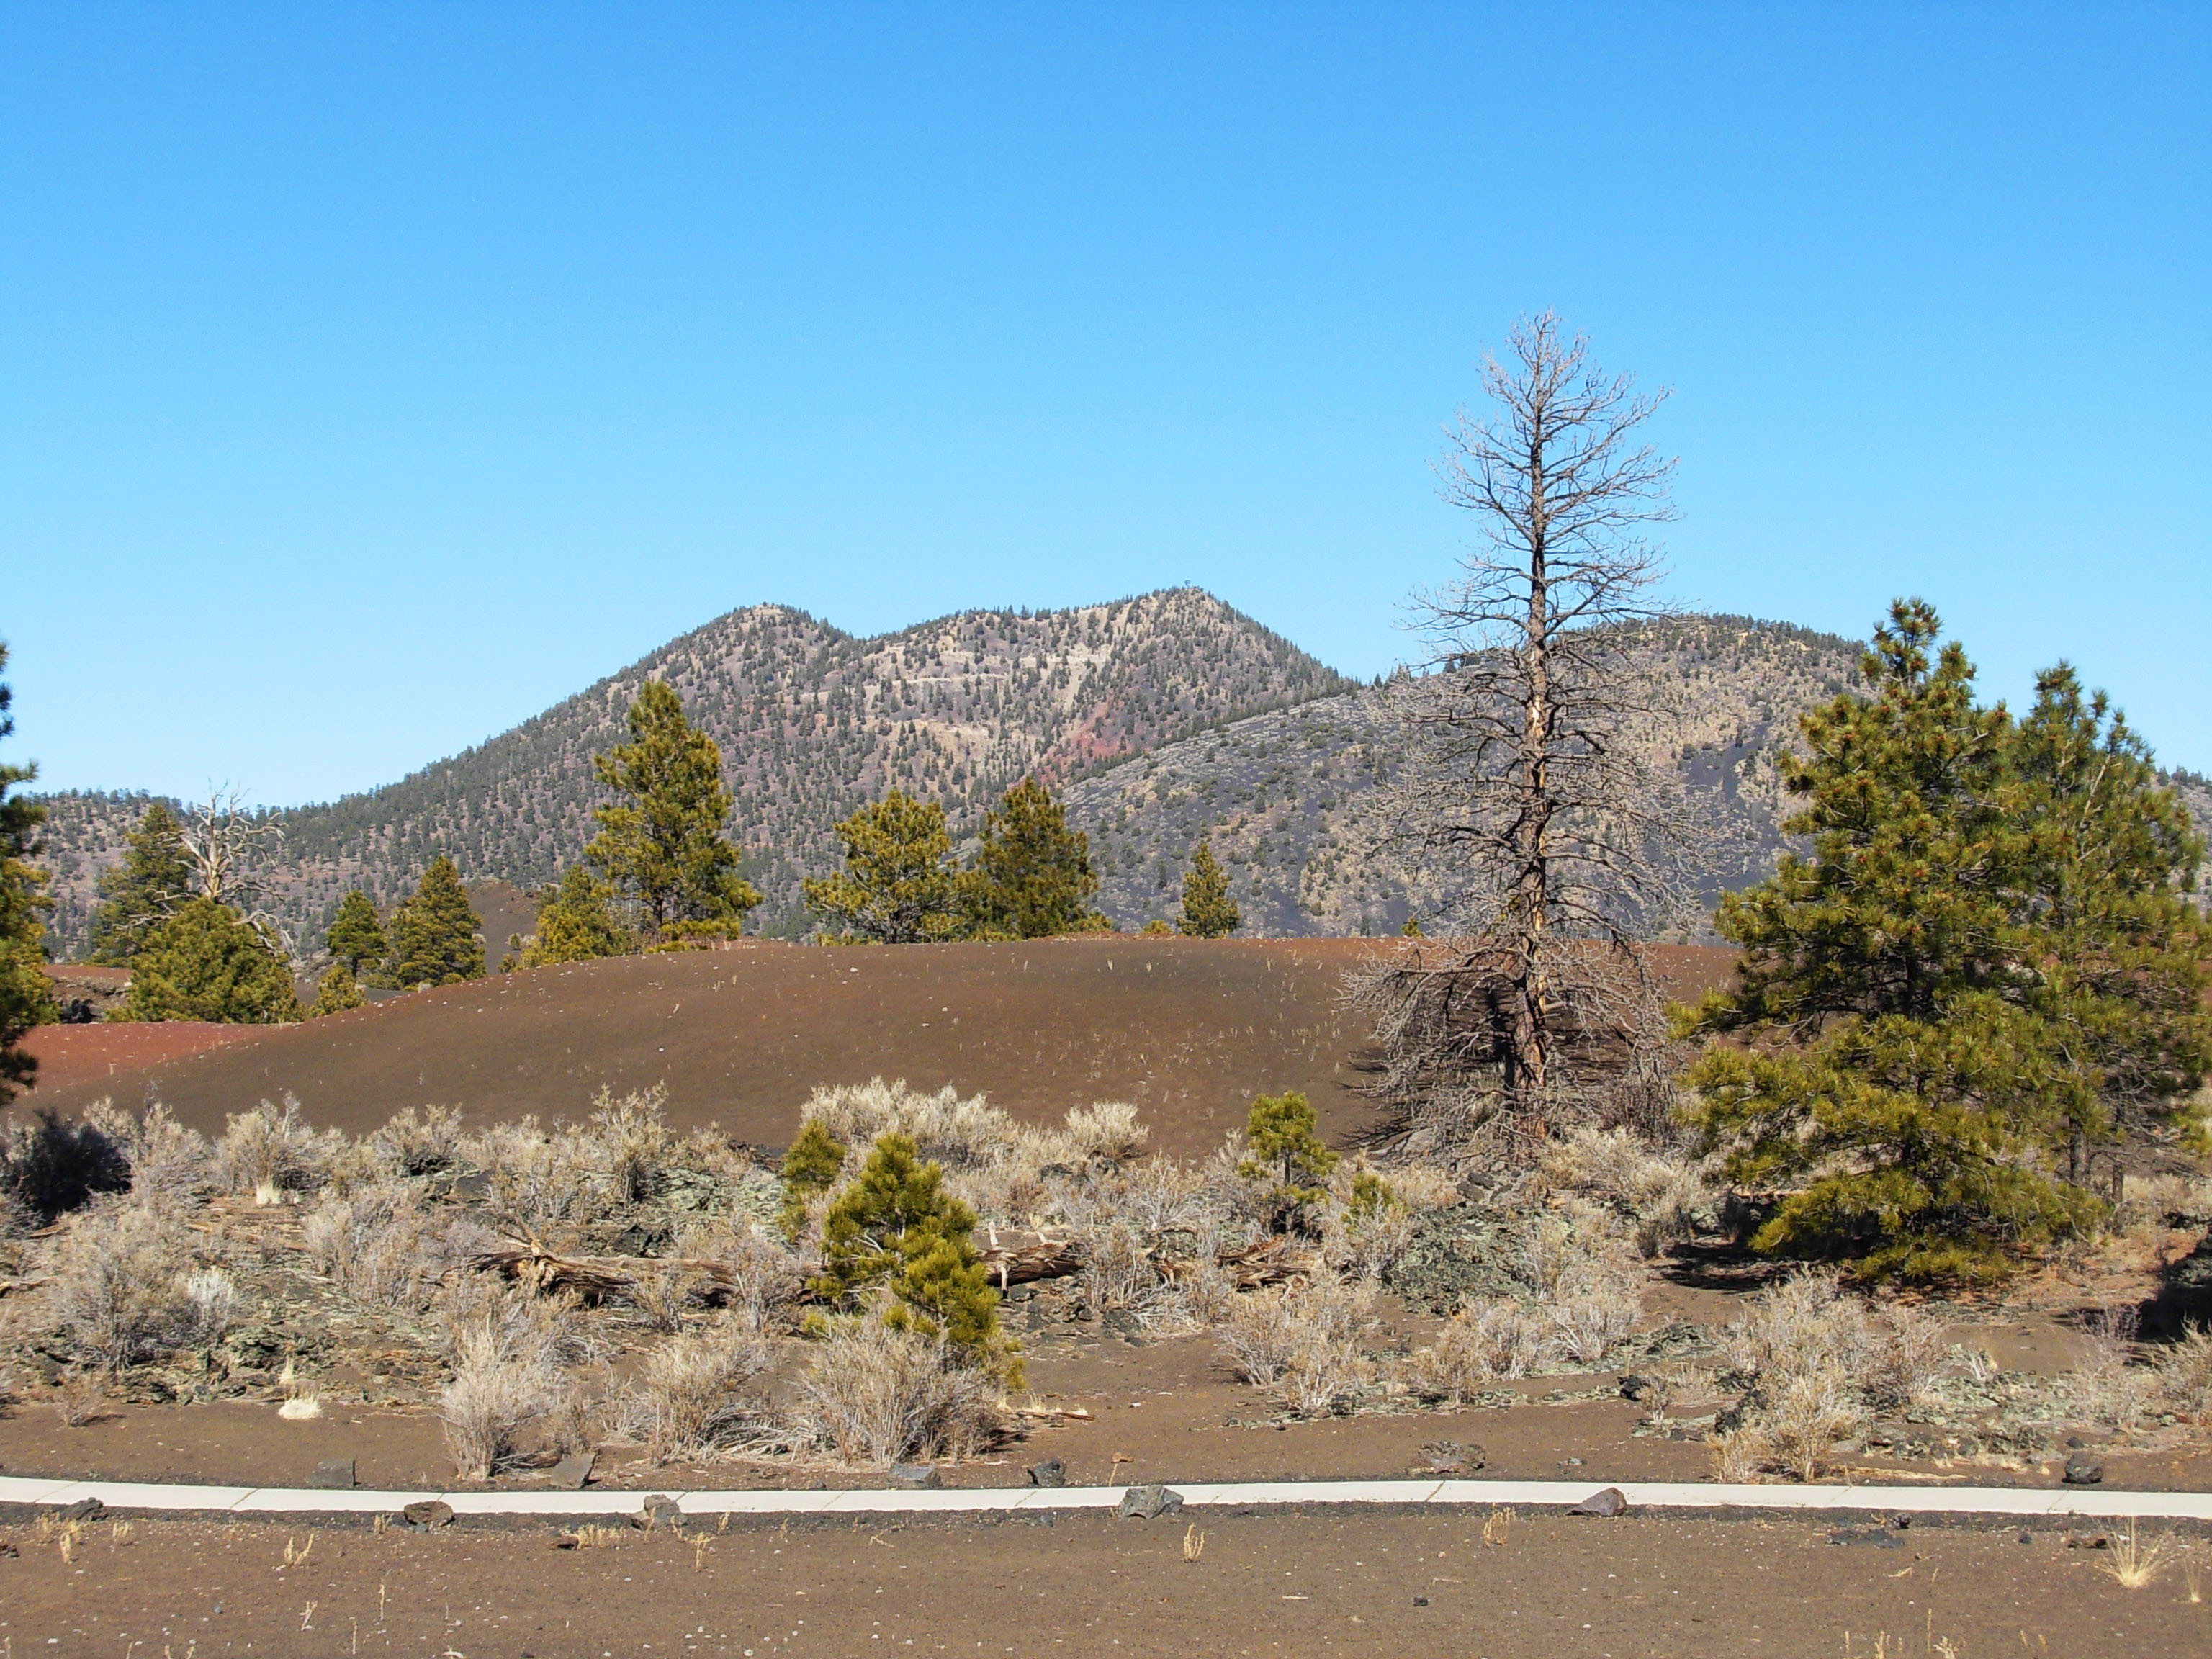 O'Leary Peak is a dome volcano